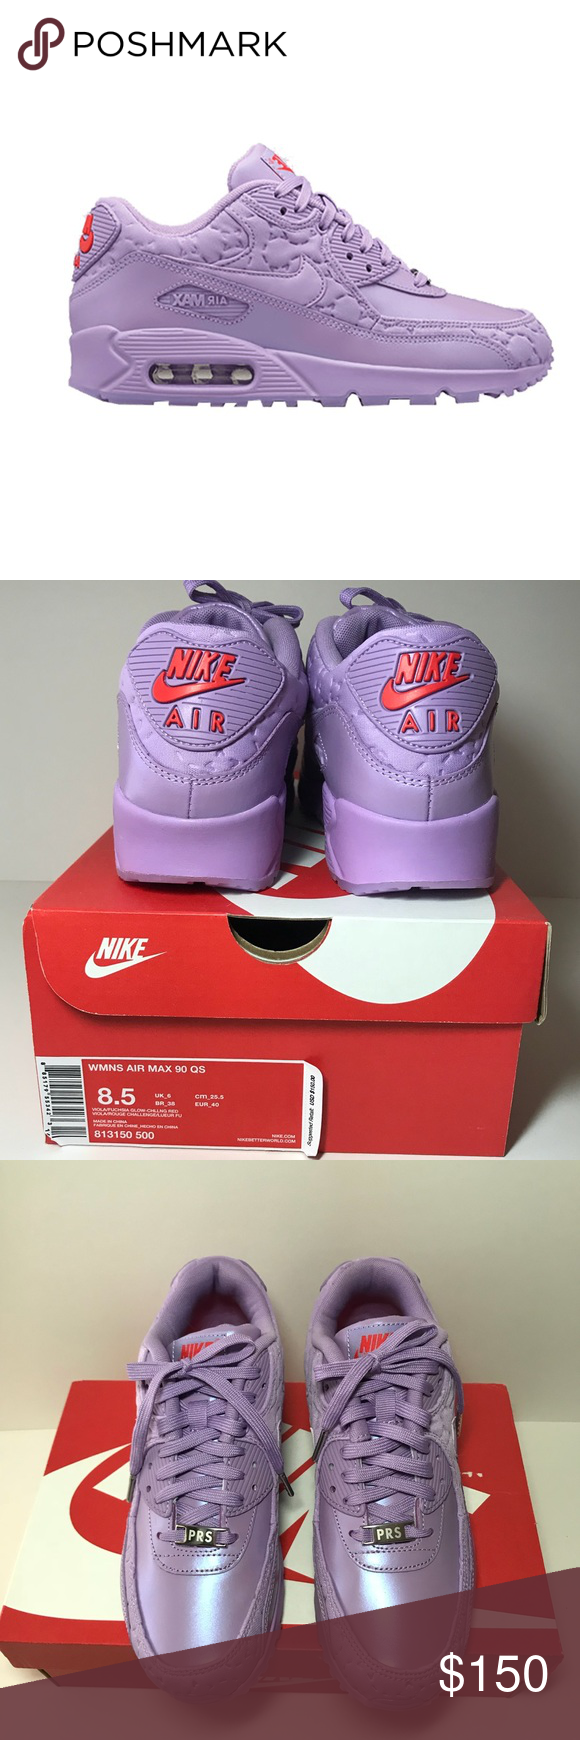 """Qualité supérieure 7c2fa 93320 Nike AirMax 90 QS """"Macaroon"""" W 8.5 Released on 9-18-15. City ..."""